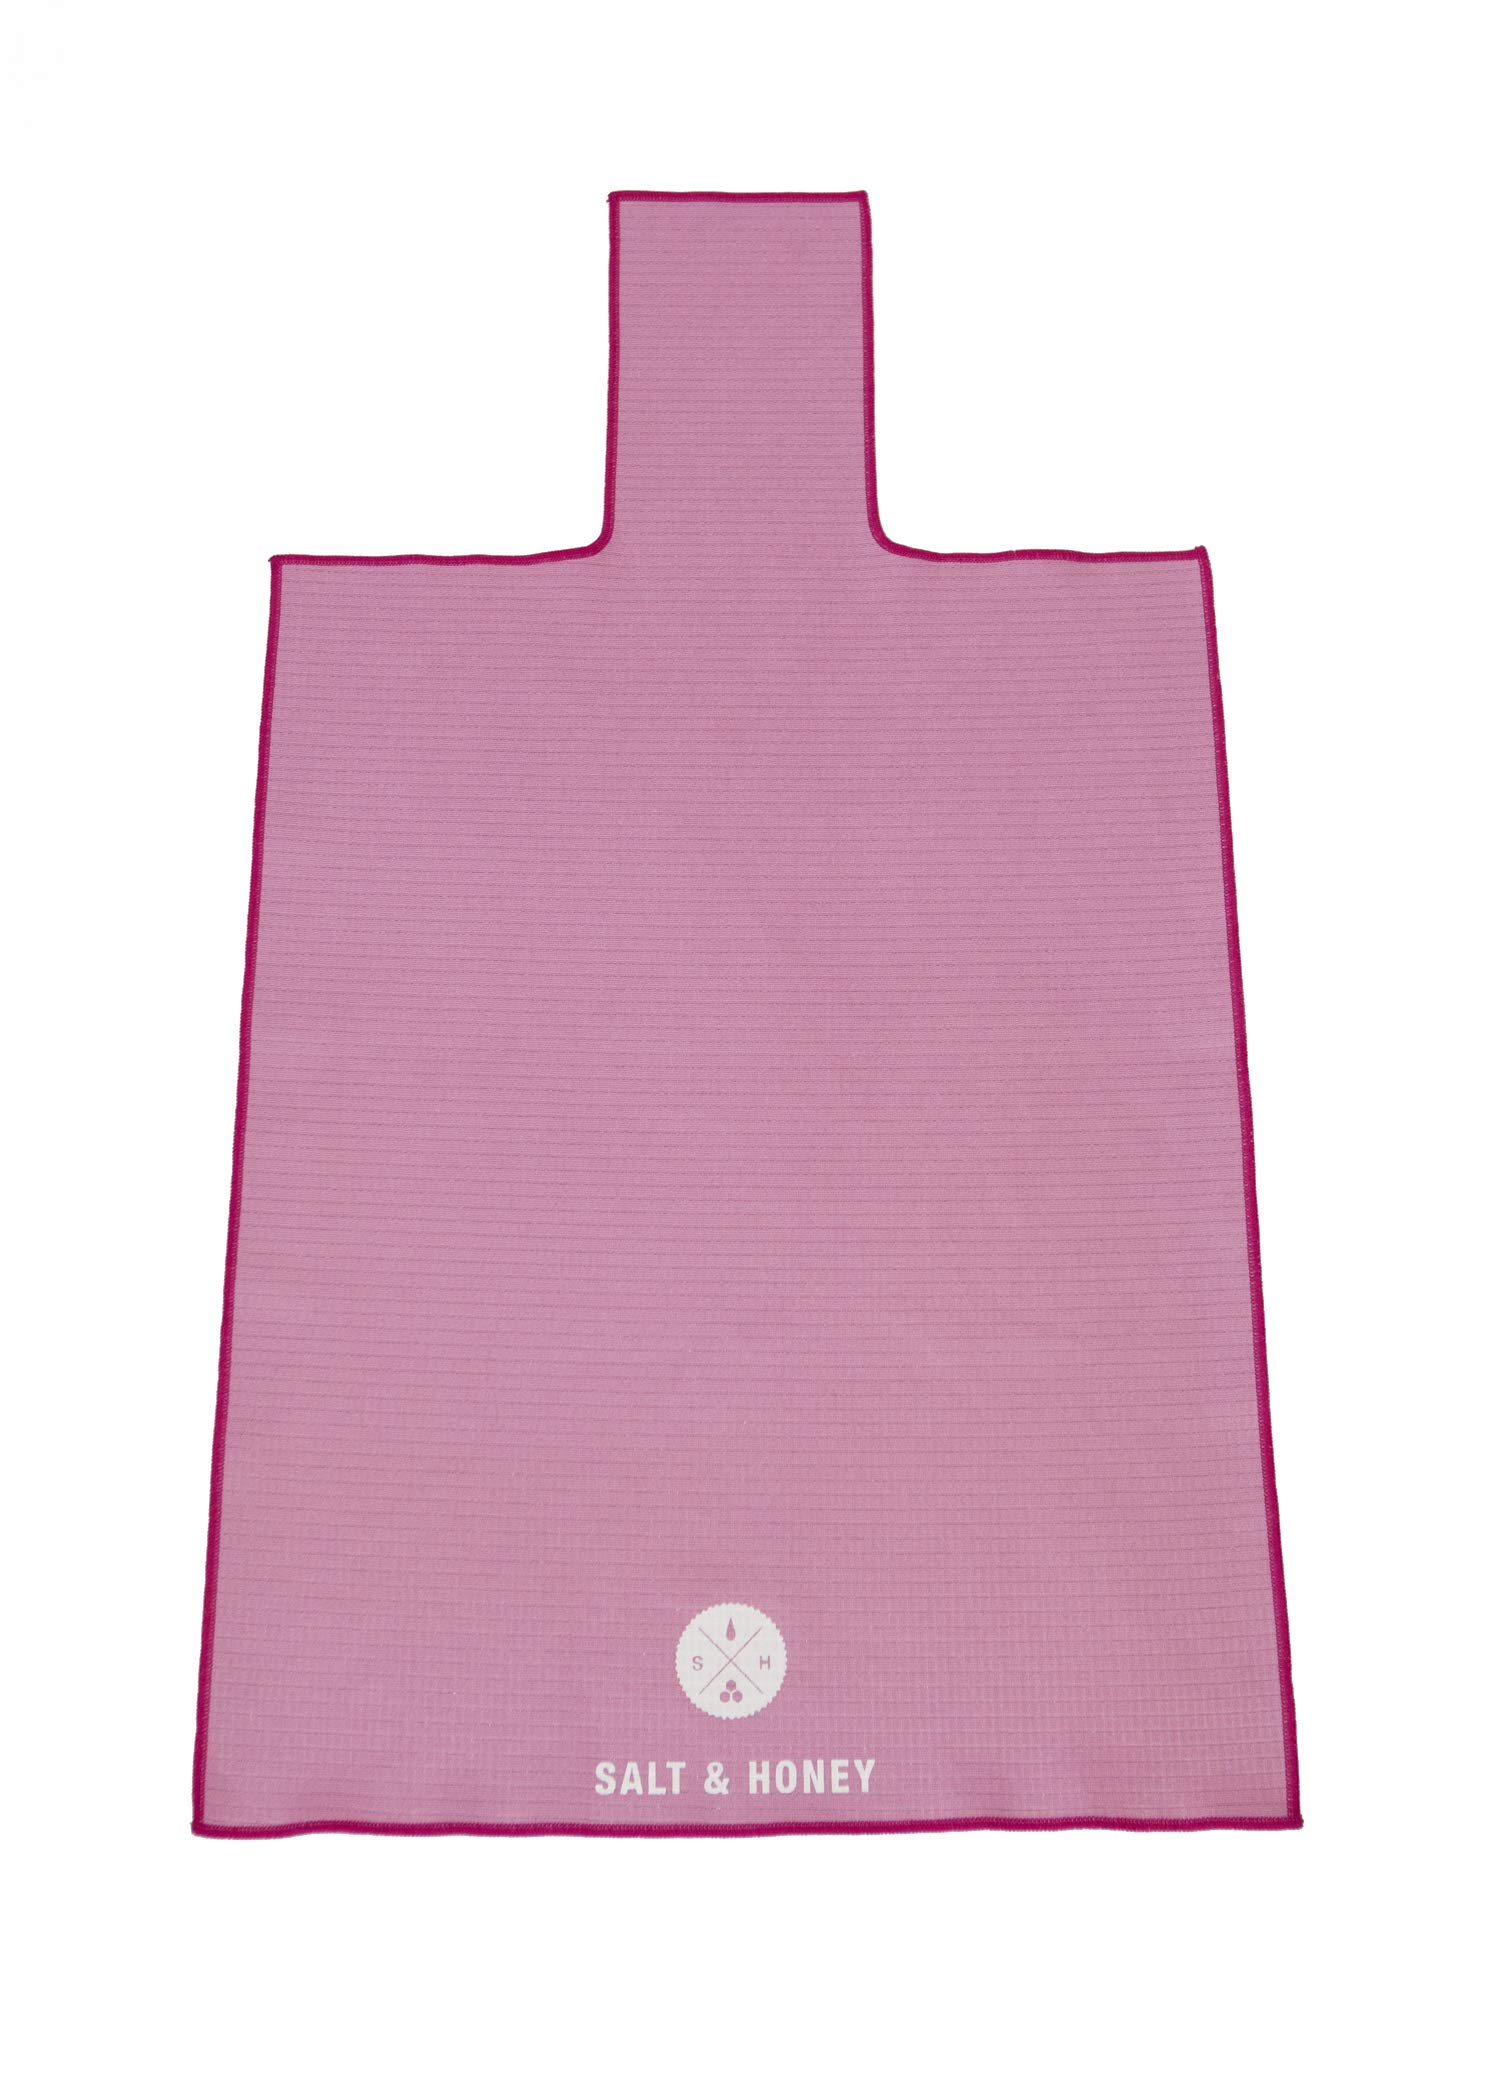 Salt & Honey Non-Slip Pilates Reformer Mat Towel (Pink)